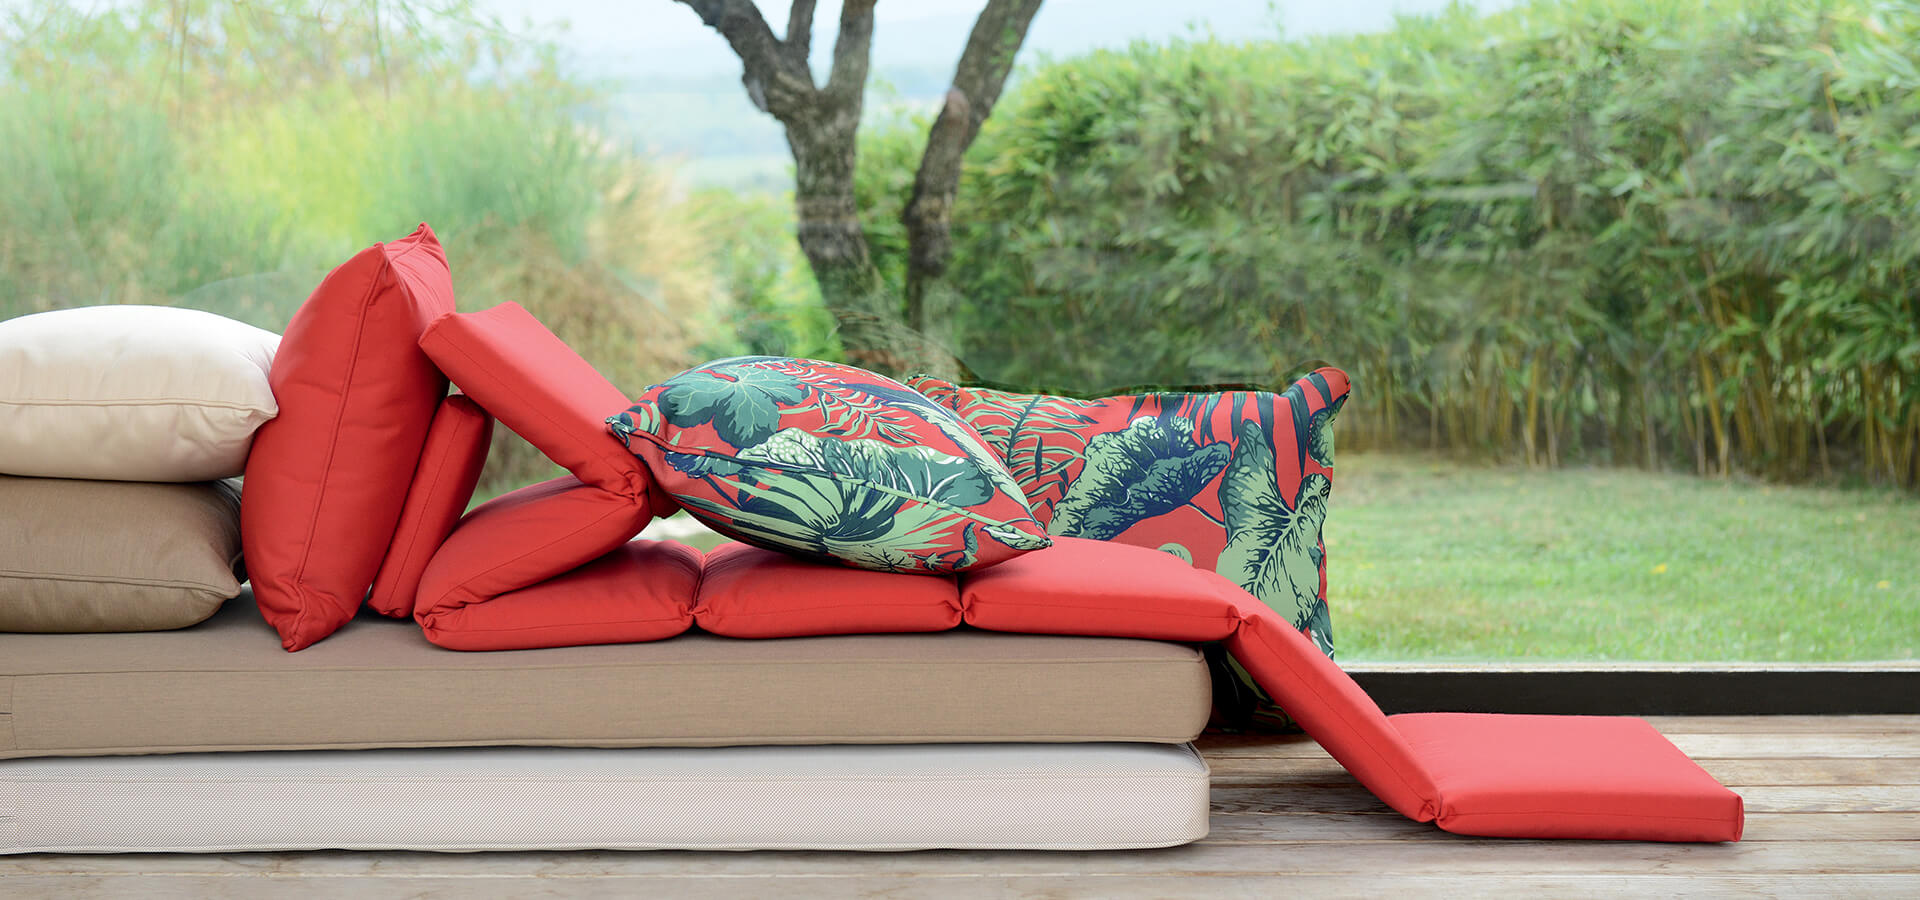 How to maintain your outdoor cushions